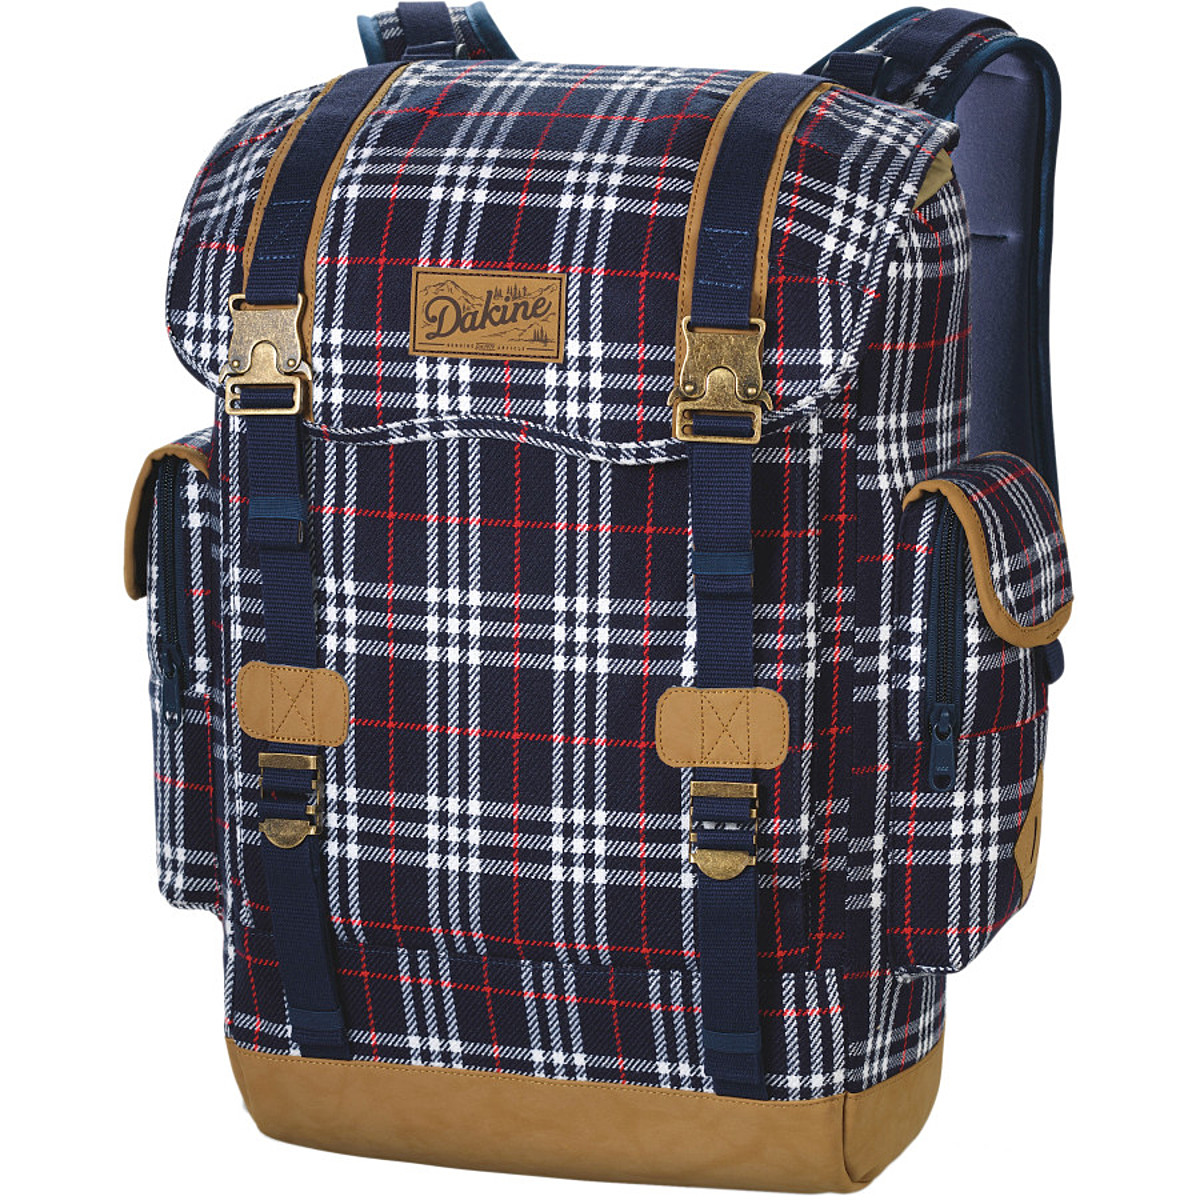 DaKine Crossroads Backpack